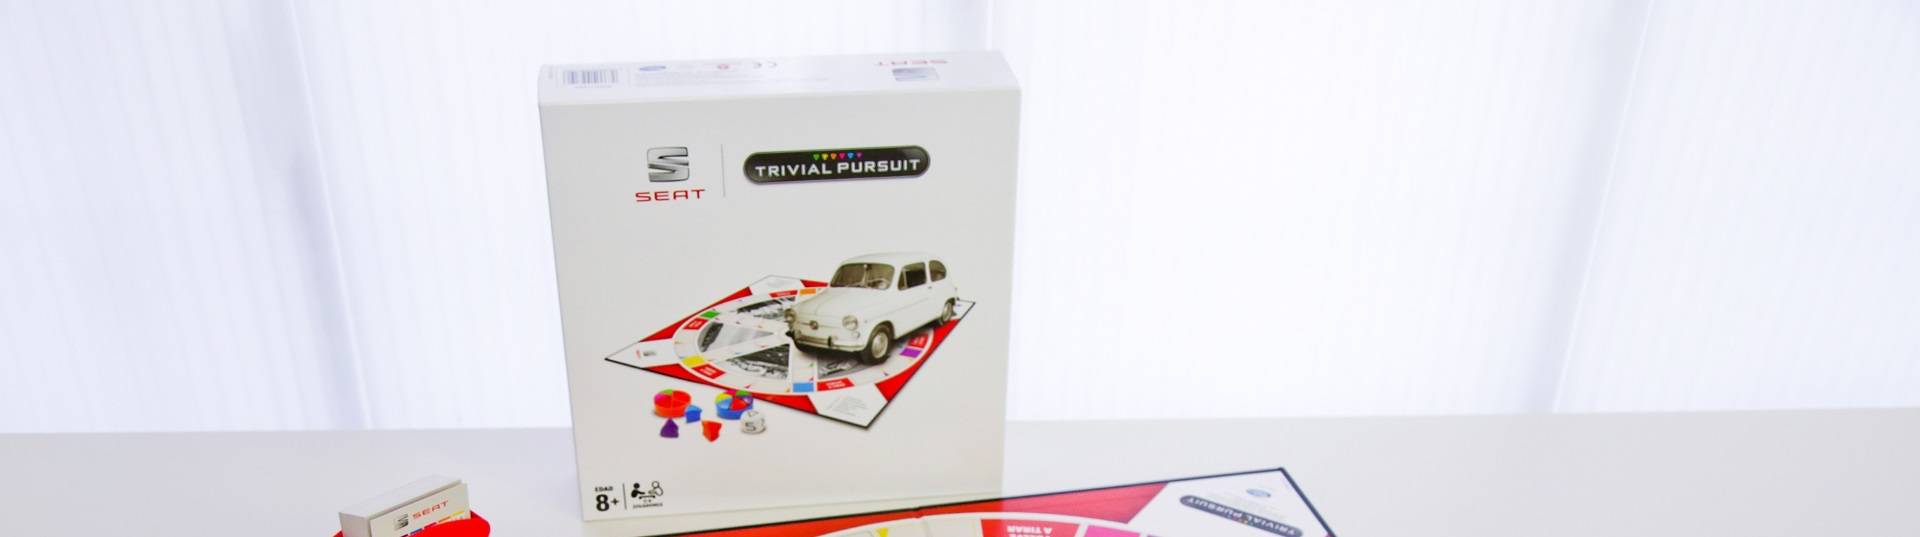 seat trivial_pursuit